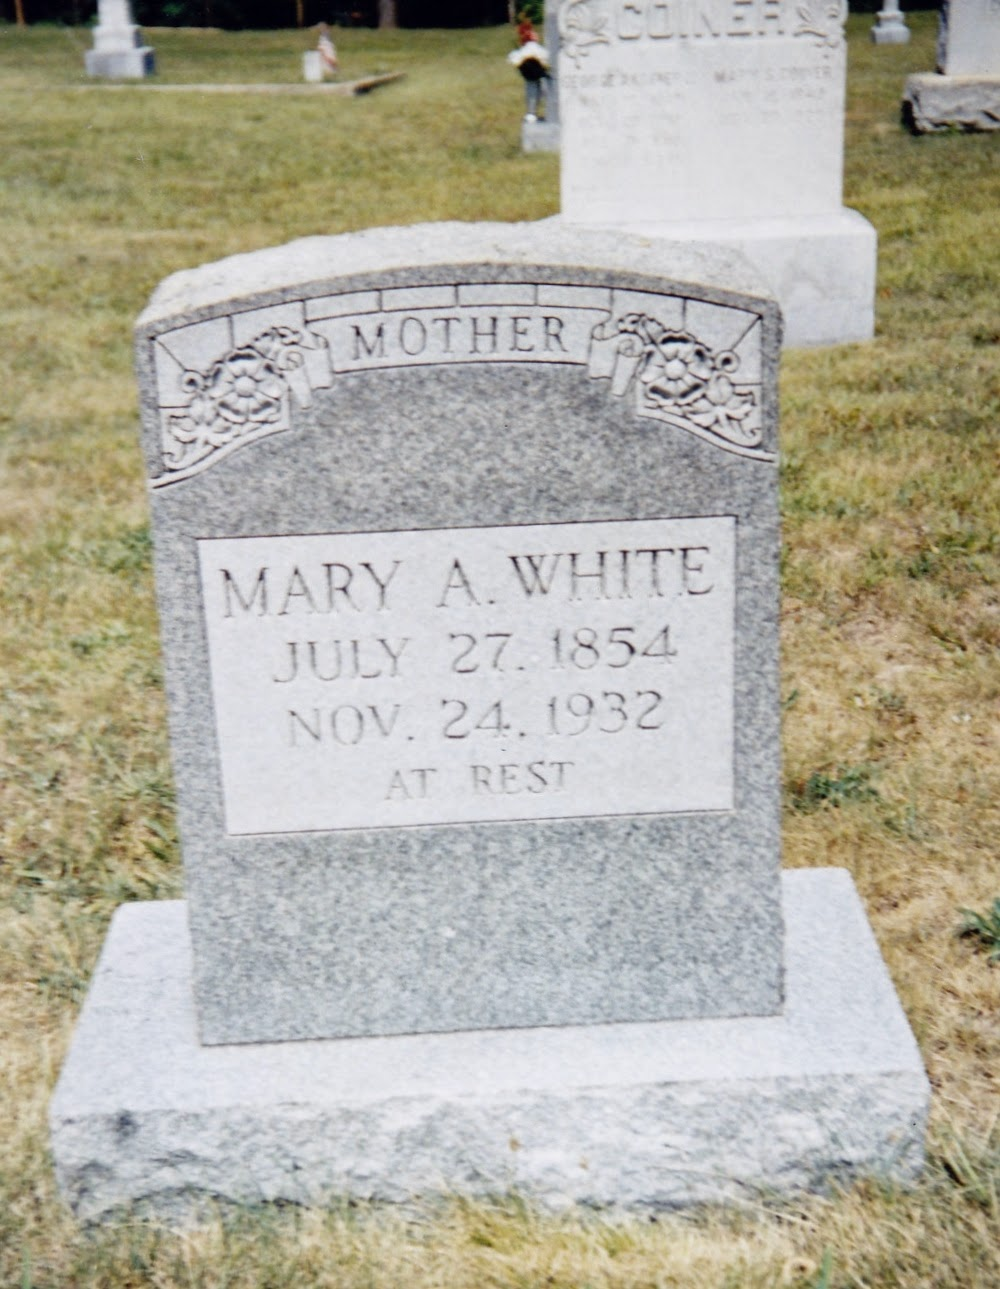 Mary A. White Tombstone, Bethlehem Lutheran Church Cemetery, Ladd, VA